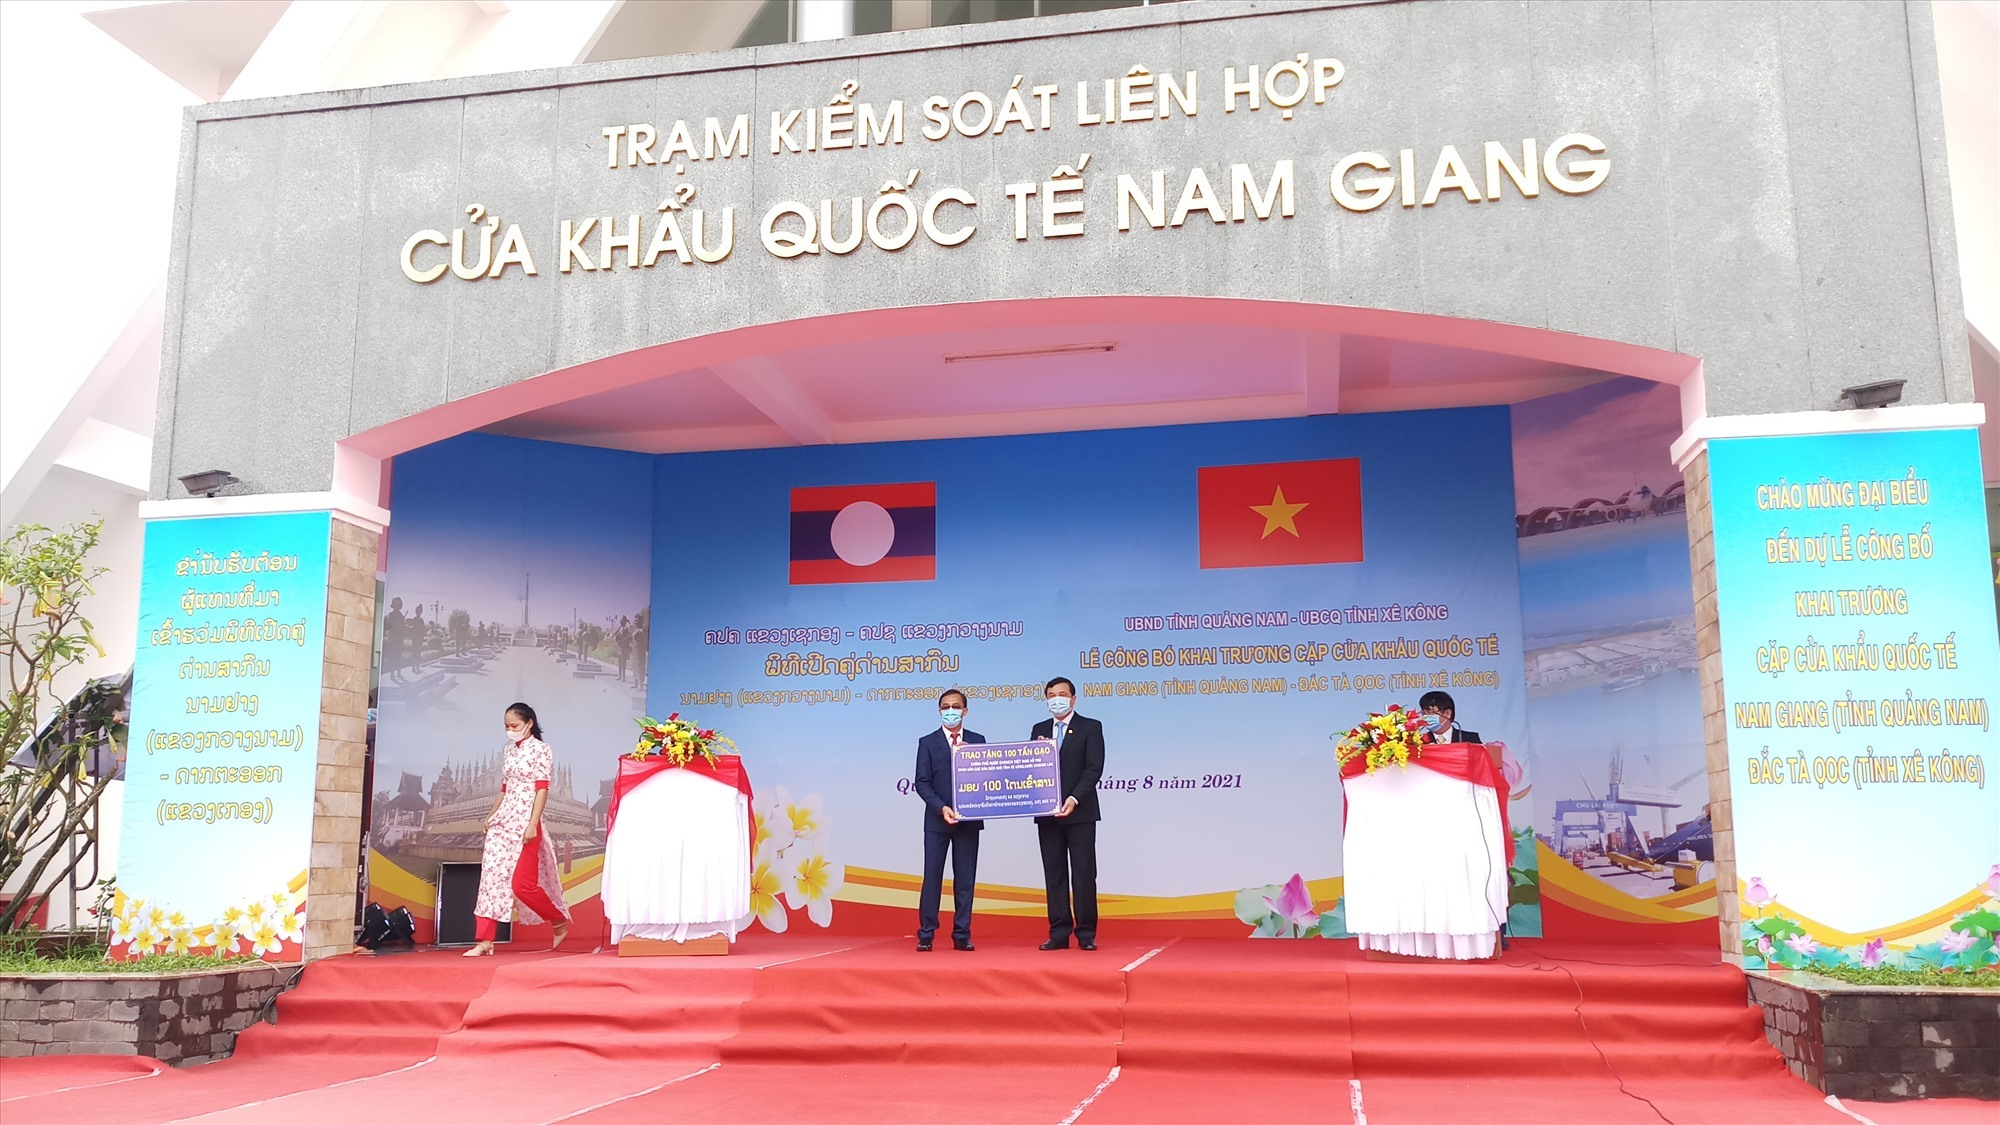 Quang Nam and Sekong have mutual supports in the fight against the Covid-19 epidemic